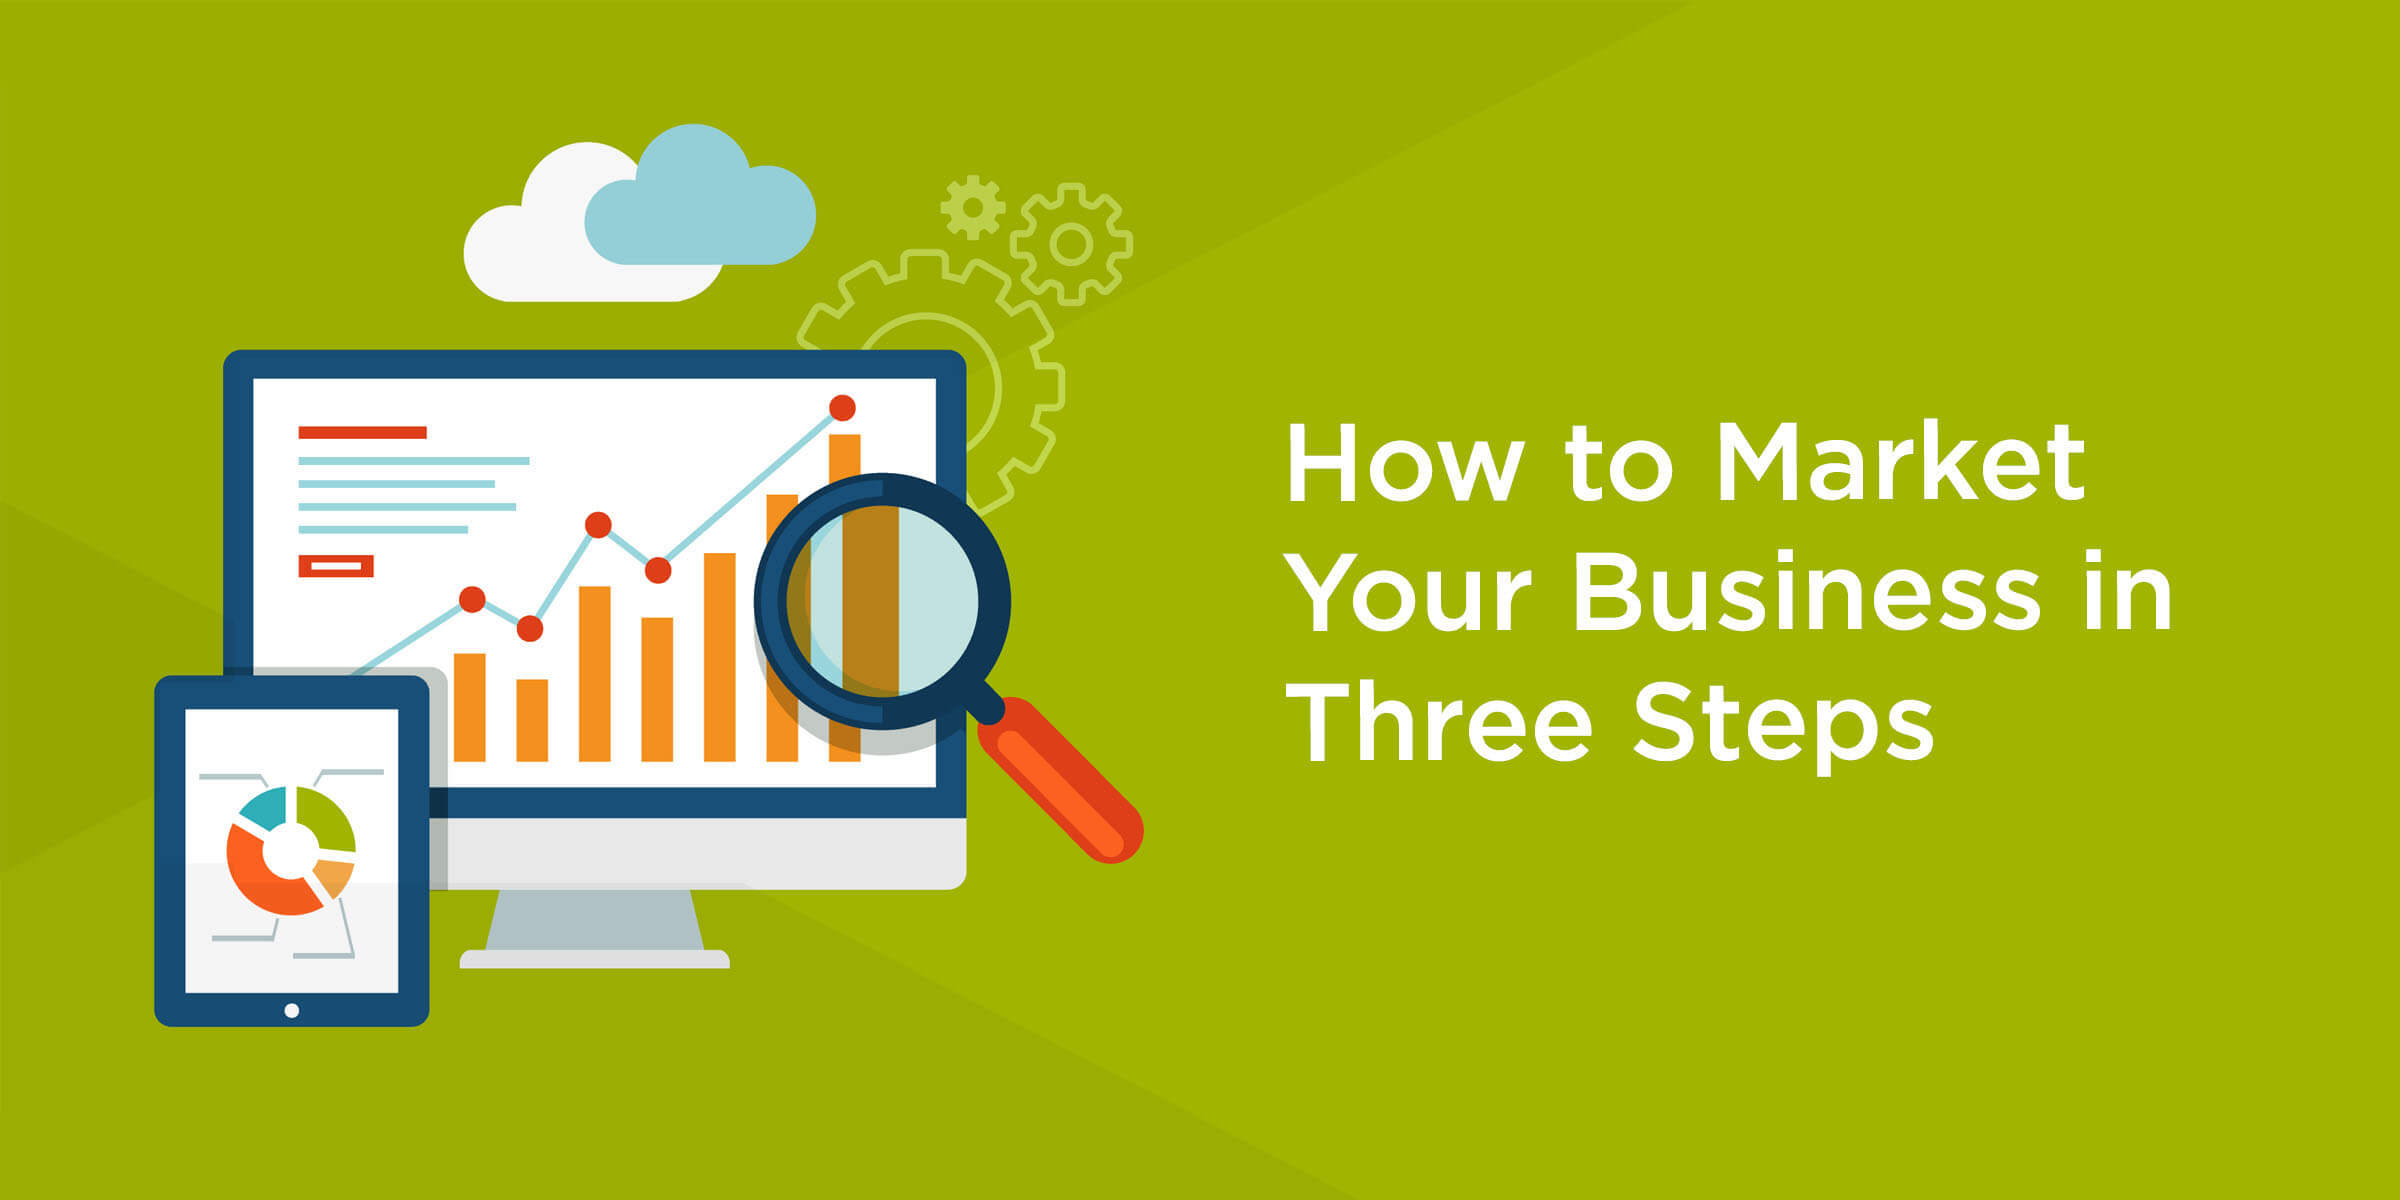 How to Market Your Business in Three Steps – McBreen Marketing